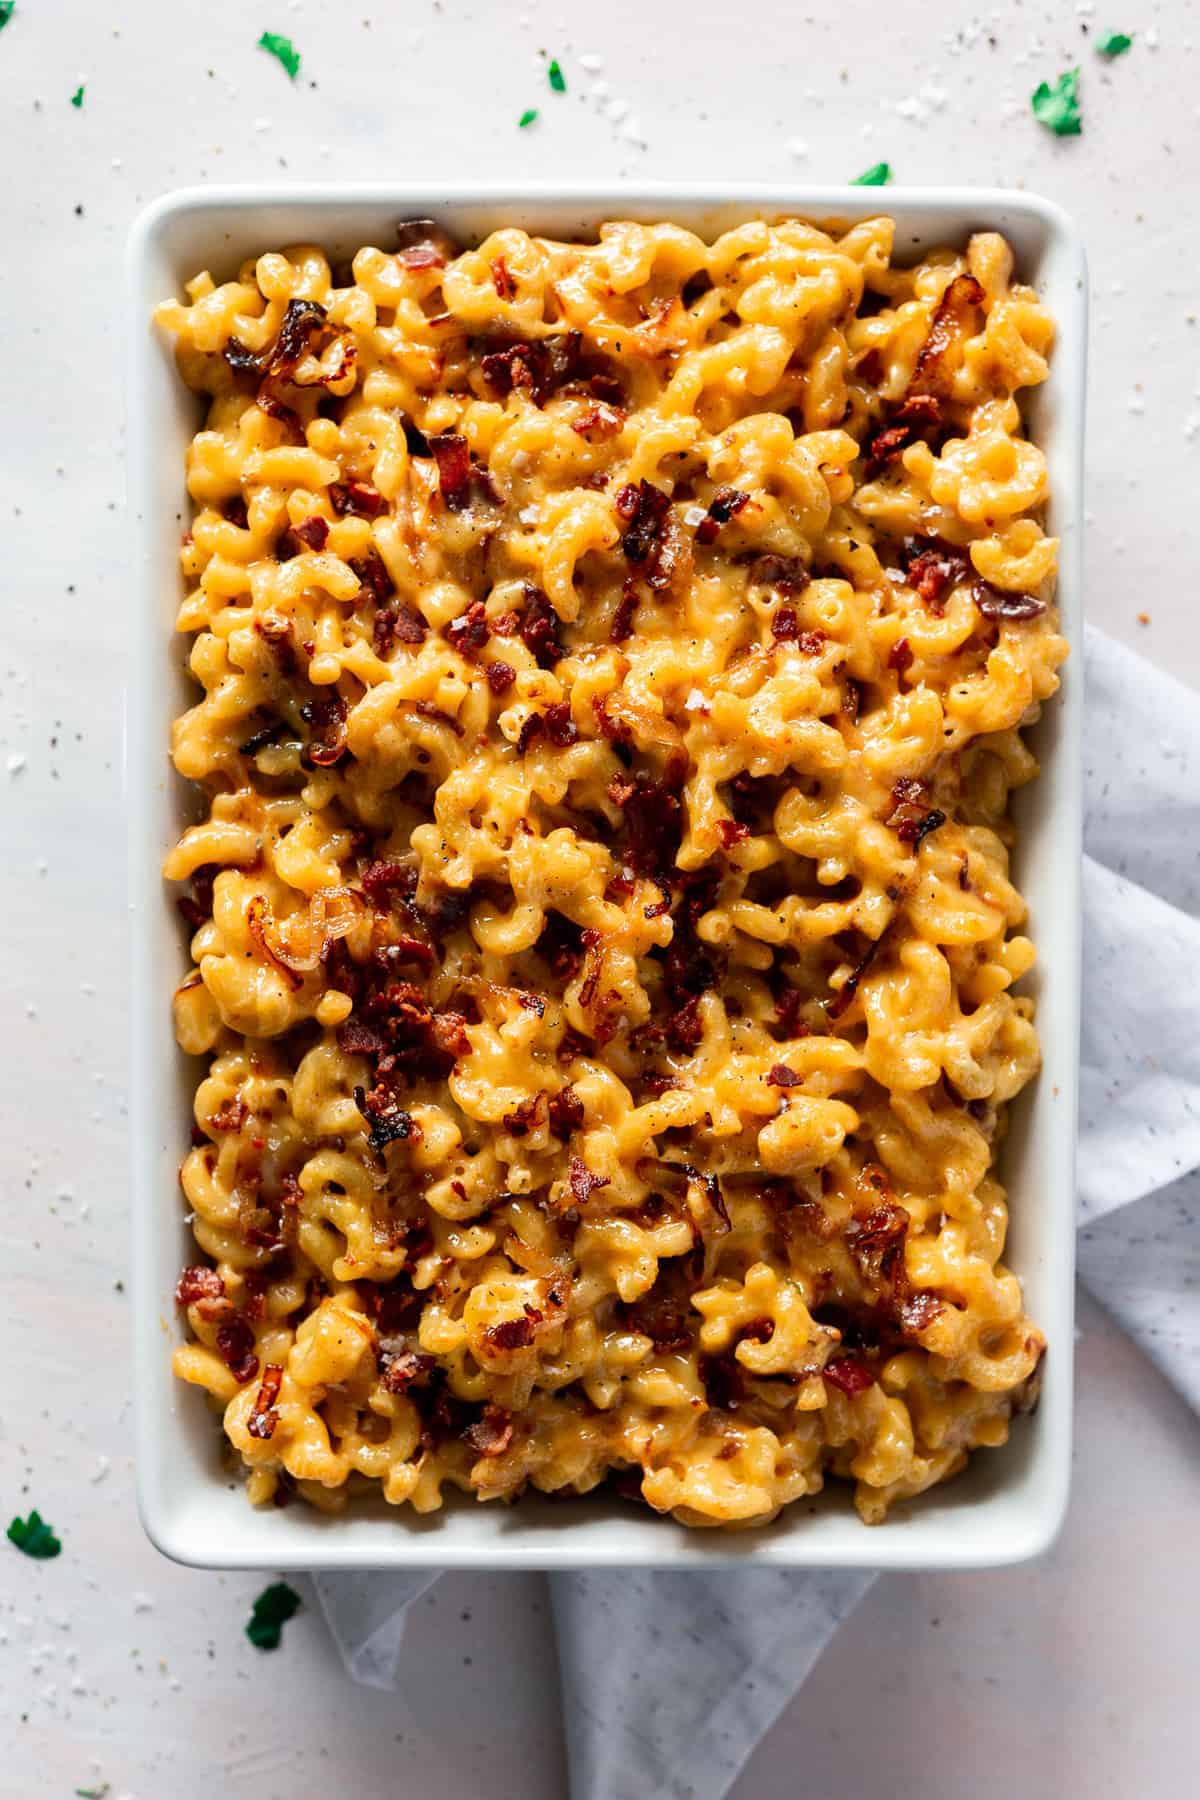 Is there anything better than bacon, caramelized onions, and cheese? According to this Creamy Baked Mac and Cheese with Bacon, absolutely not.